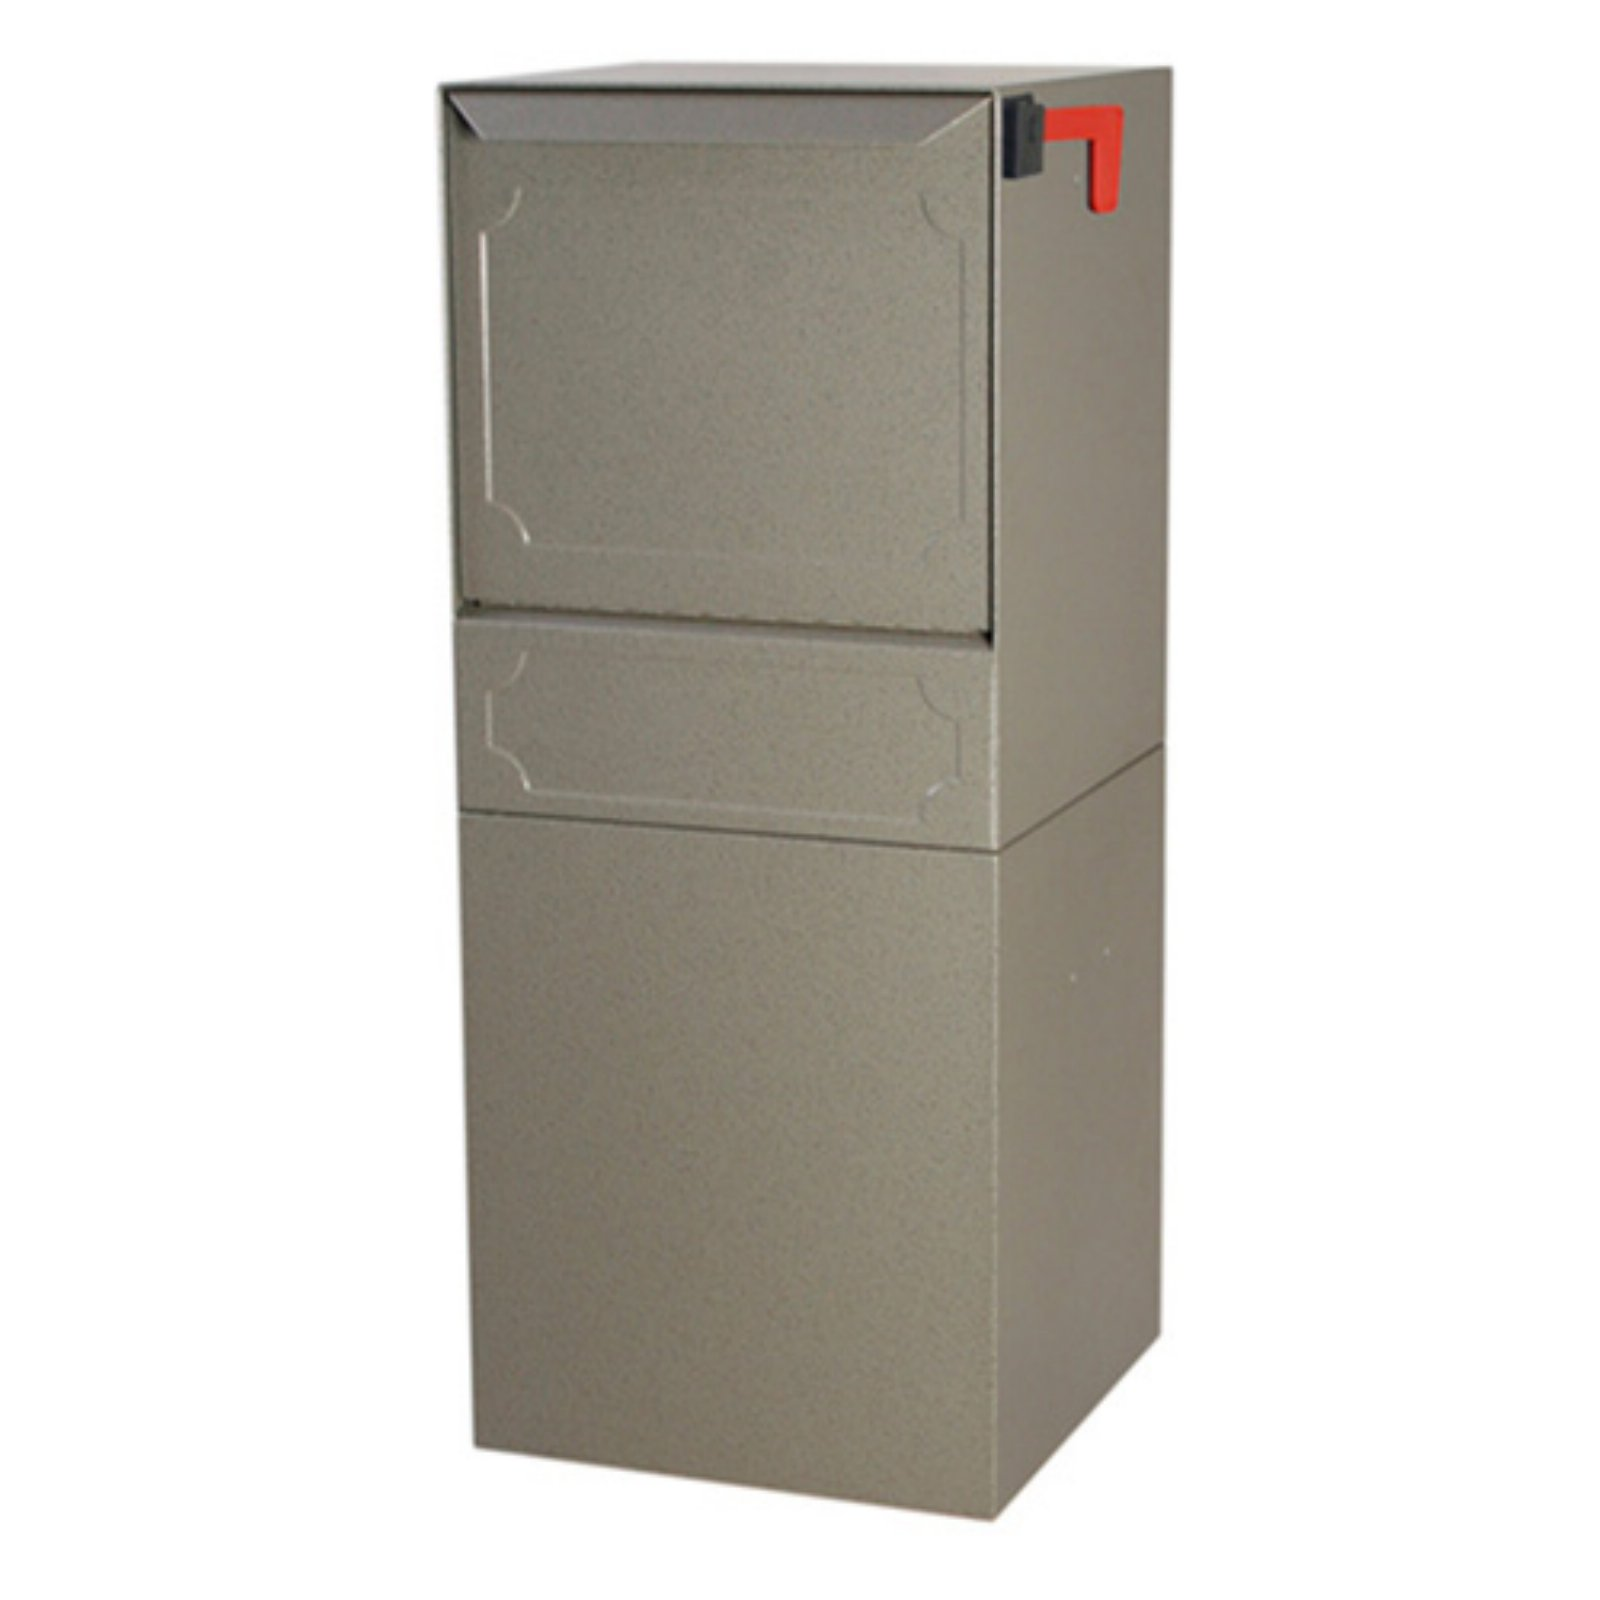 Dvault Post Mount Delivery Vault Gray In 2019 Large